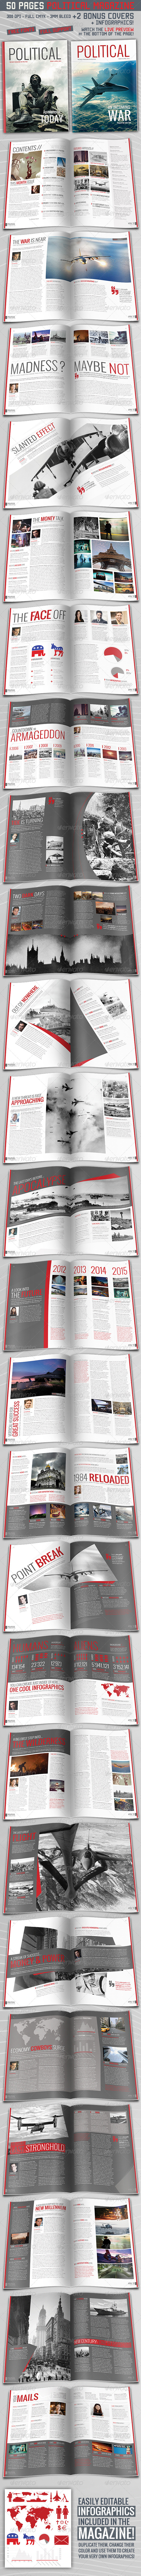 GraphicRiver Political Magazine 50 Pages&2 Covers&Infographics 4541036